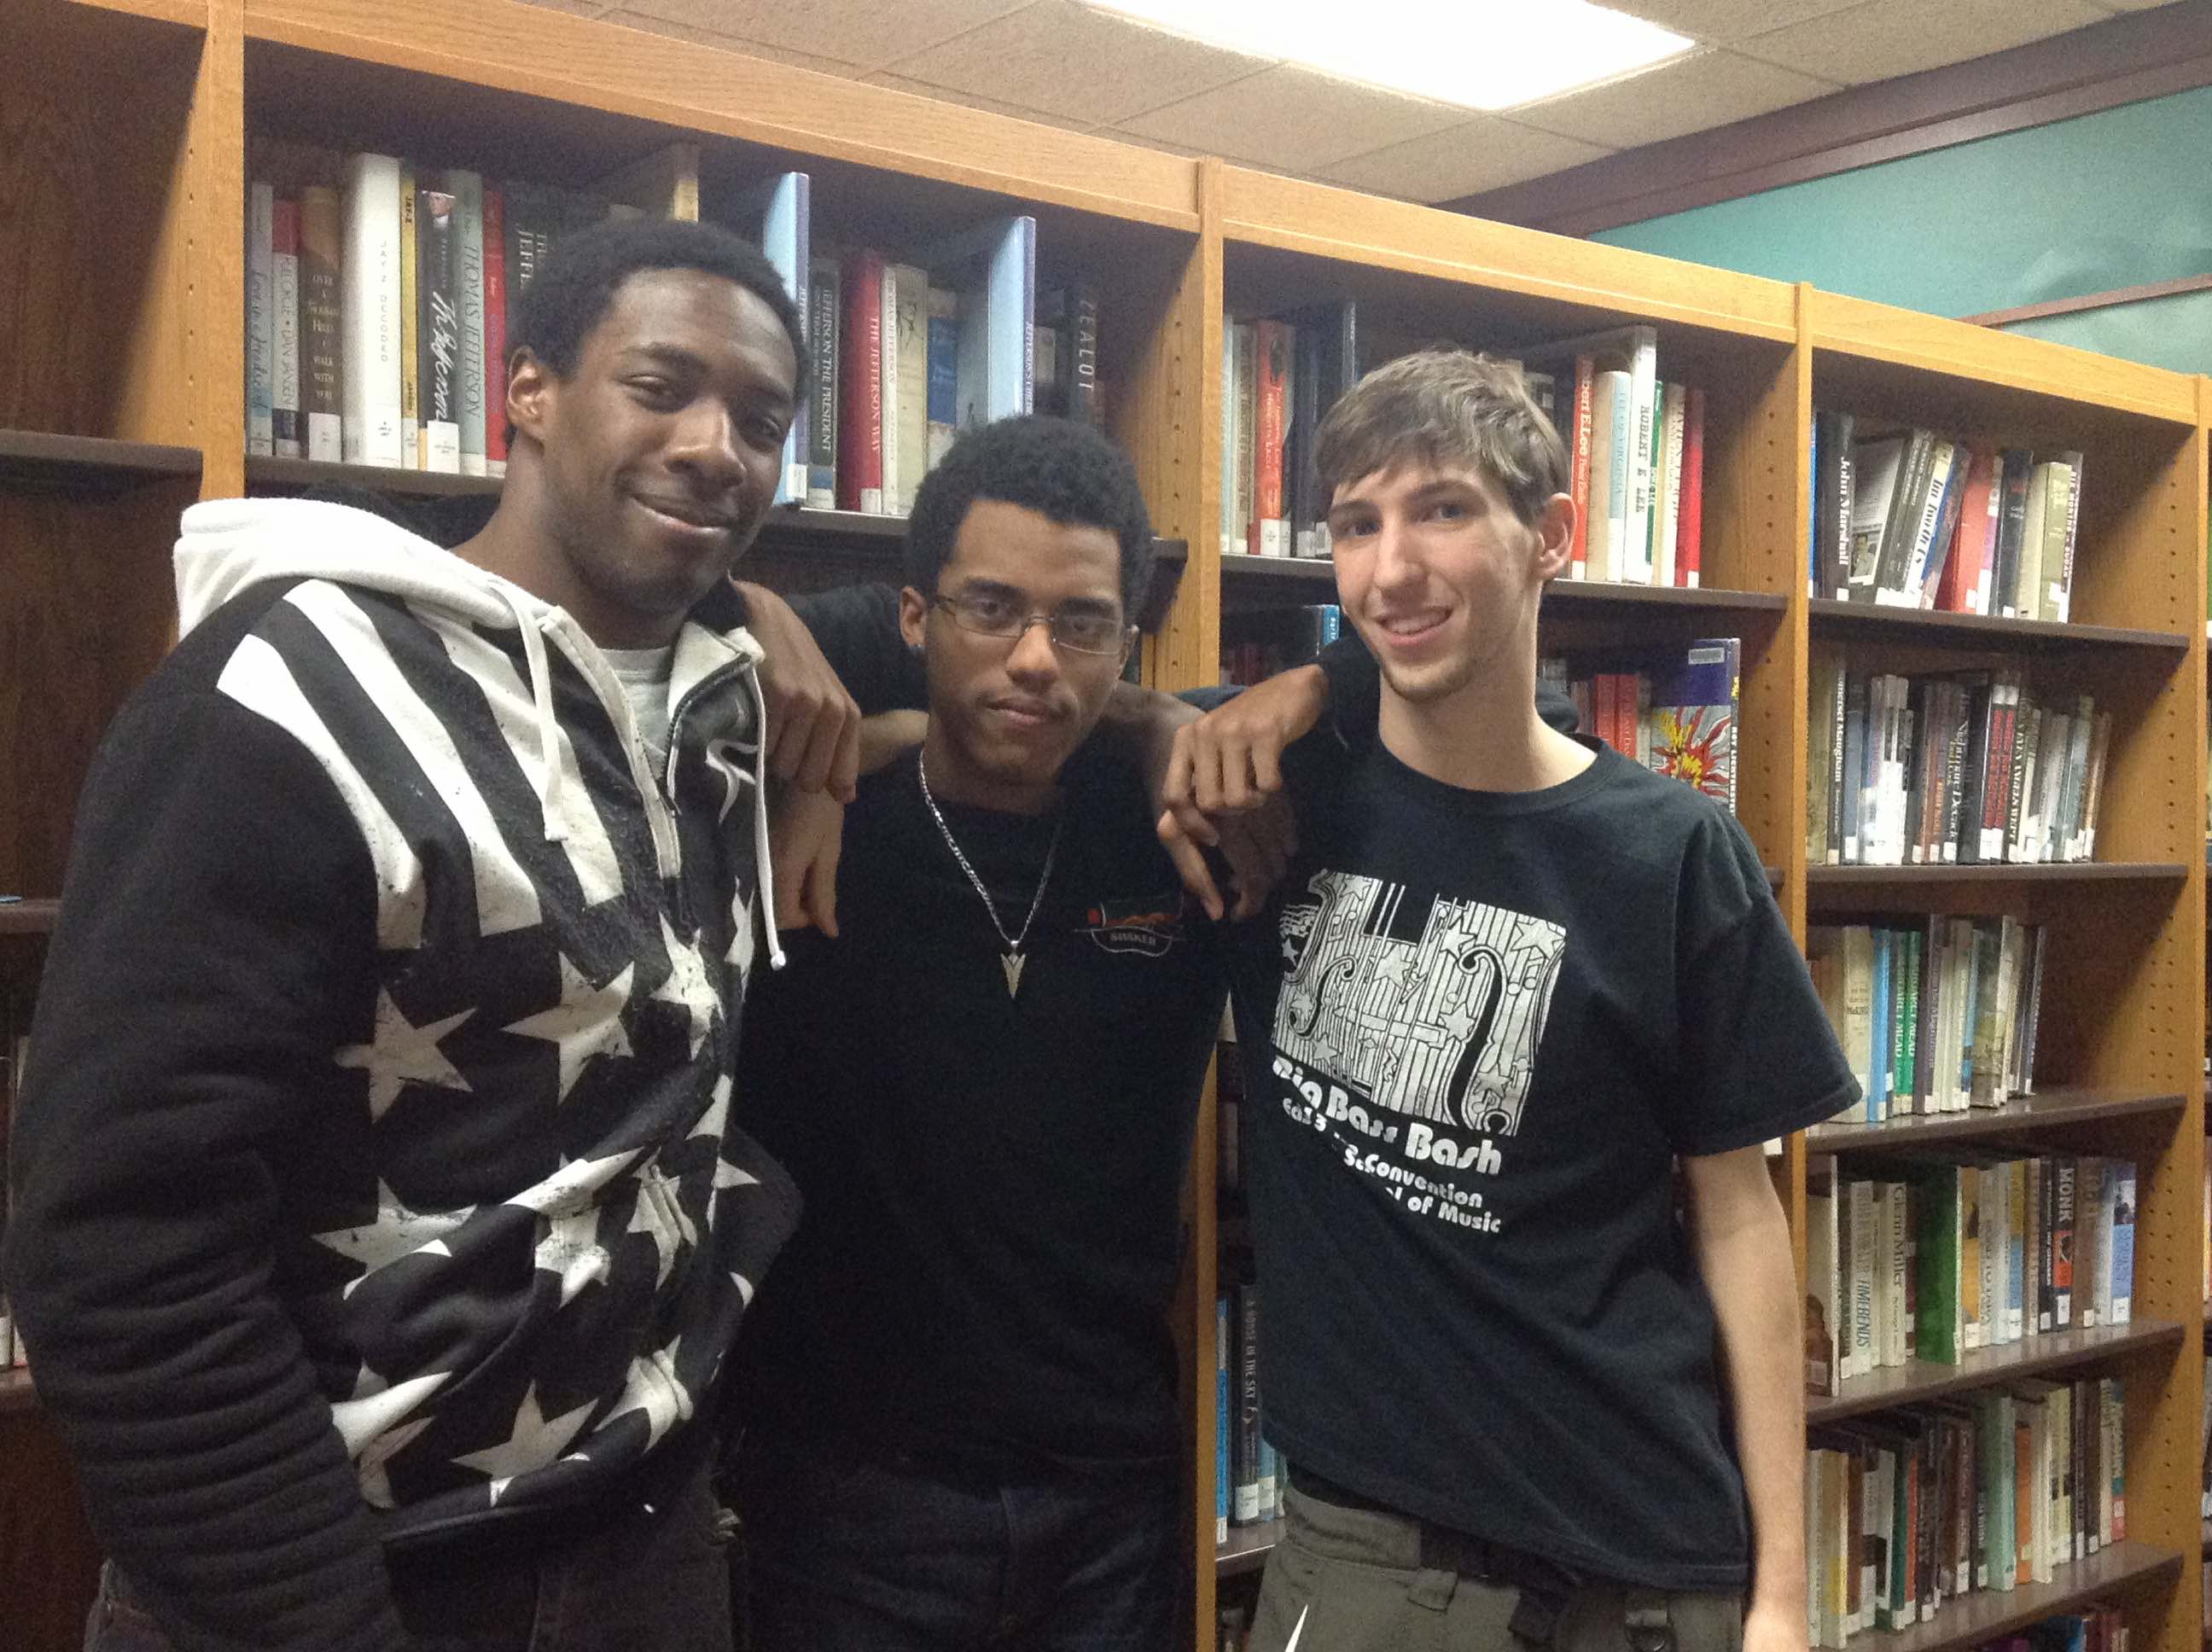 Sankofa members Jeron Gaskins, Jonathan Kennerly and John Mietus from left to right share their opinions on Black History Month